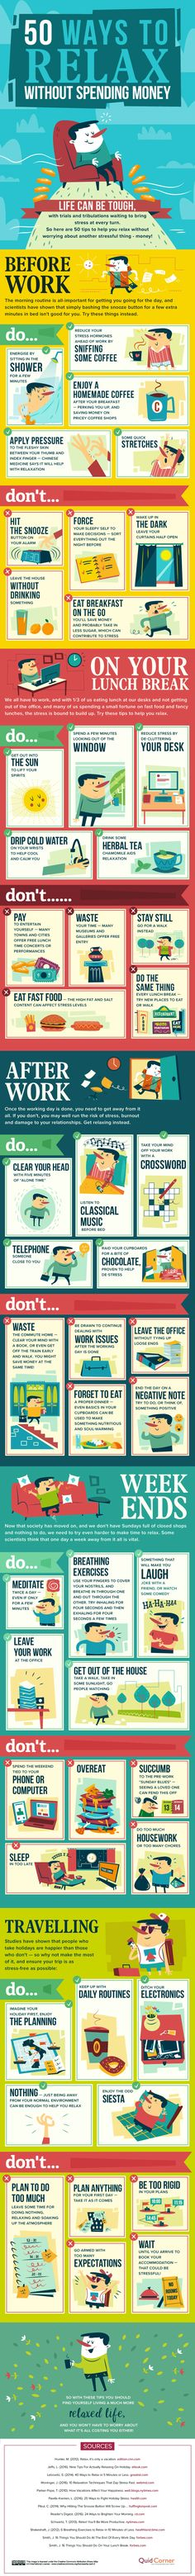 50-ways-to-relax-without-spending-money